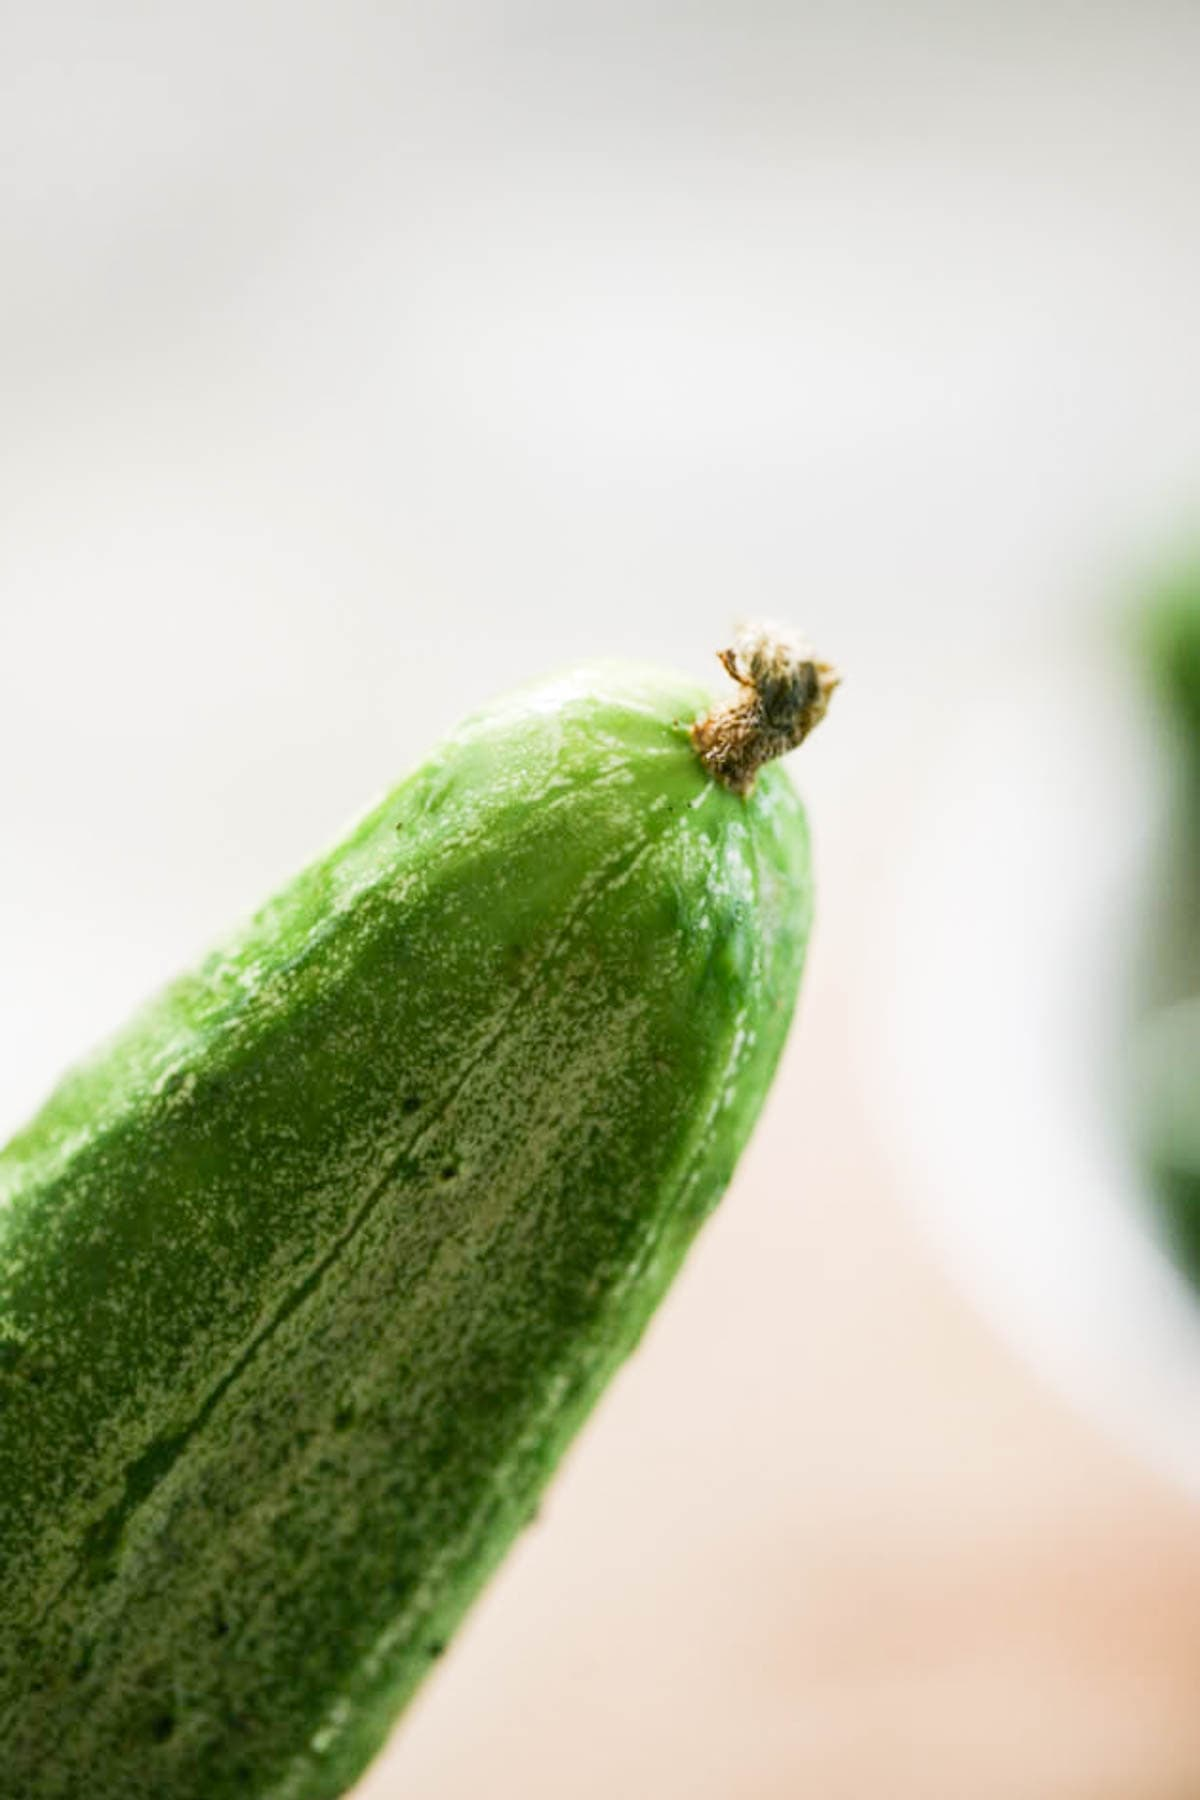 Blossom end of a cucumber.